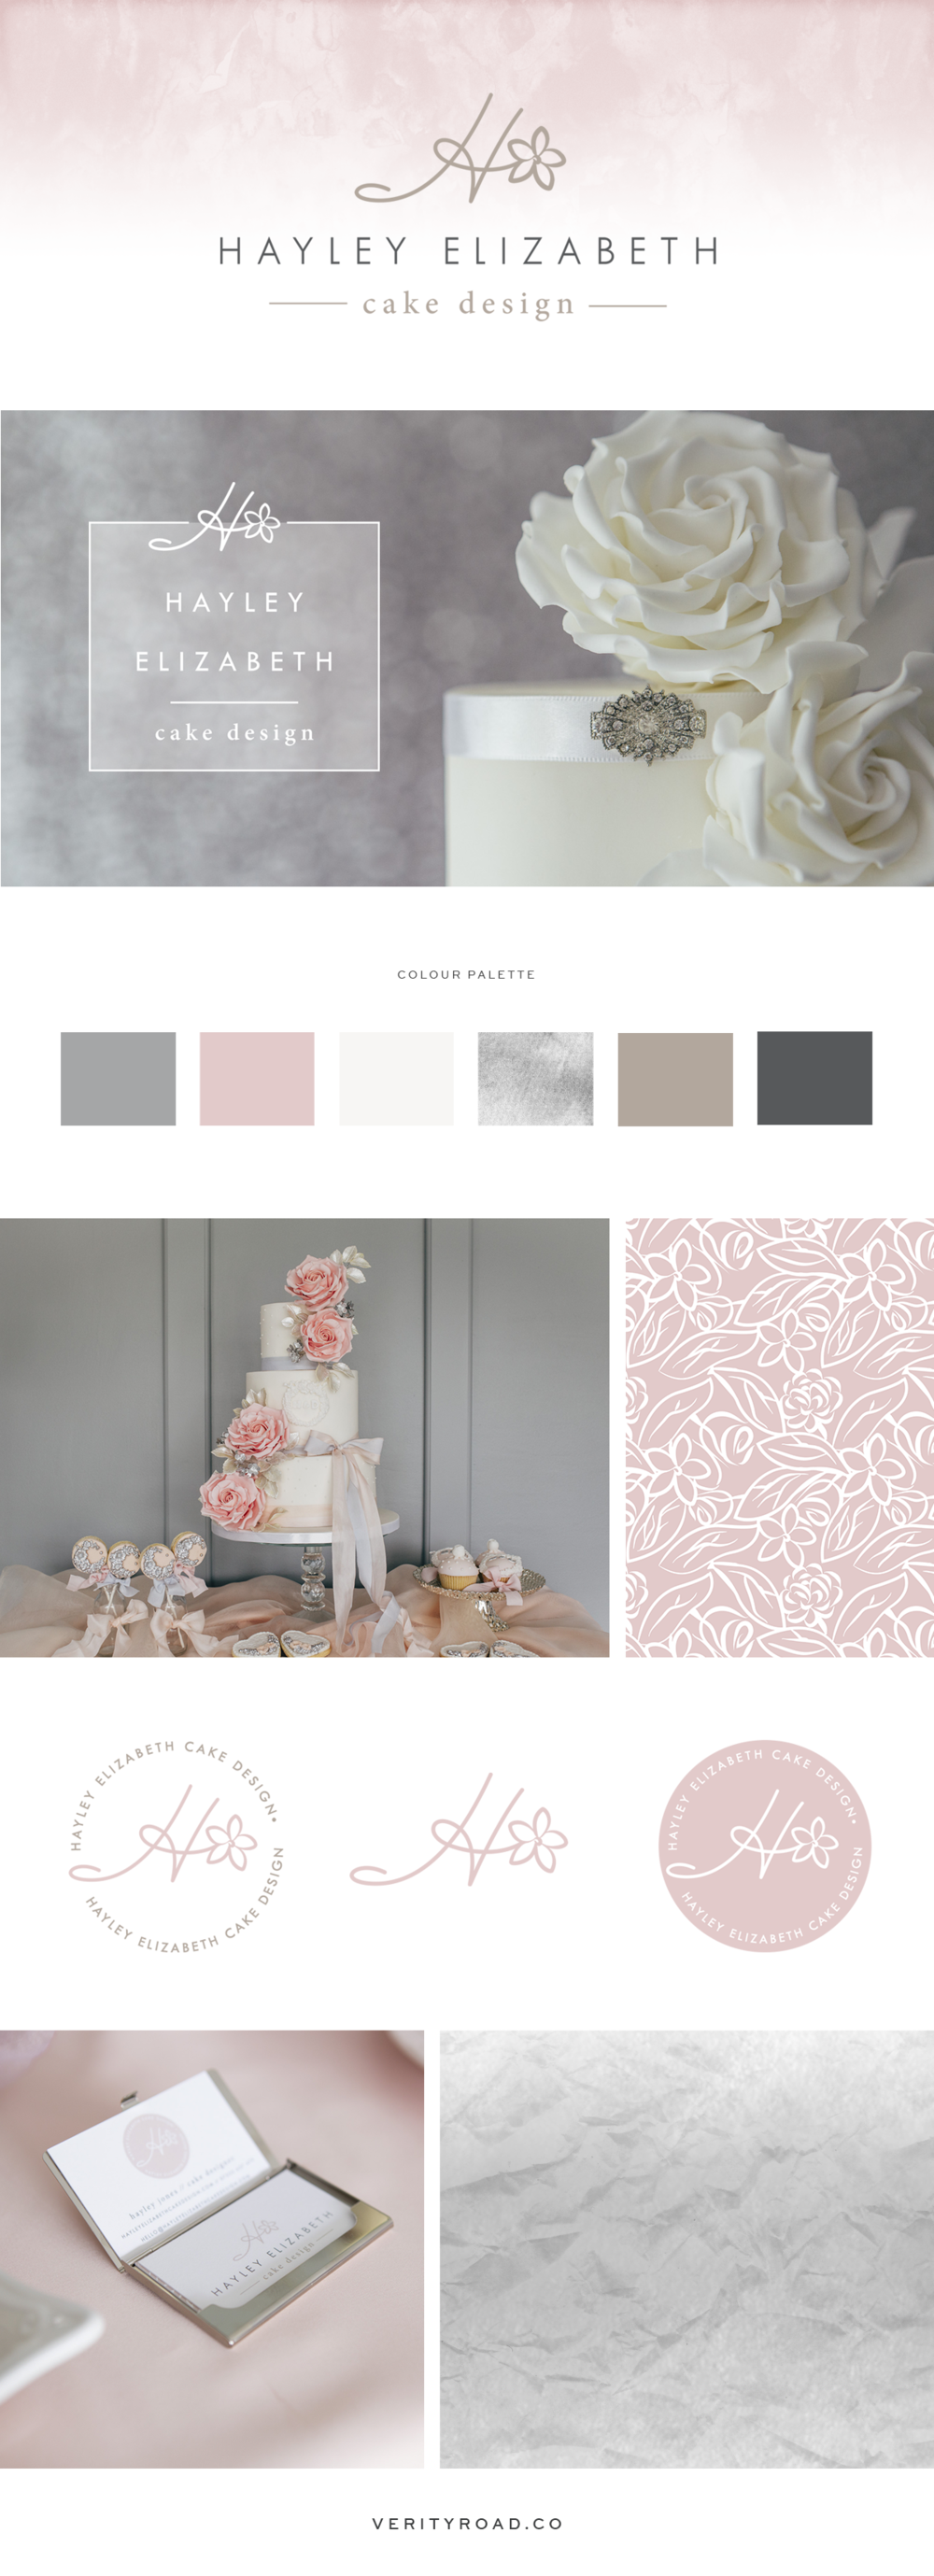 Brand board, brand style guide for the branding of Hayley Elizabeth Cake Design by Verity Road. Feminine branding, feminine web design, luxury branding, female entrepreneur, wedding professional, wedding business branding. Logo design, brand elements, feminine colour palette, business card design, patterns and textures. See more for custom web design.